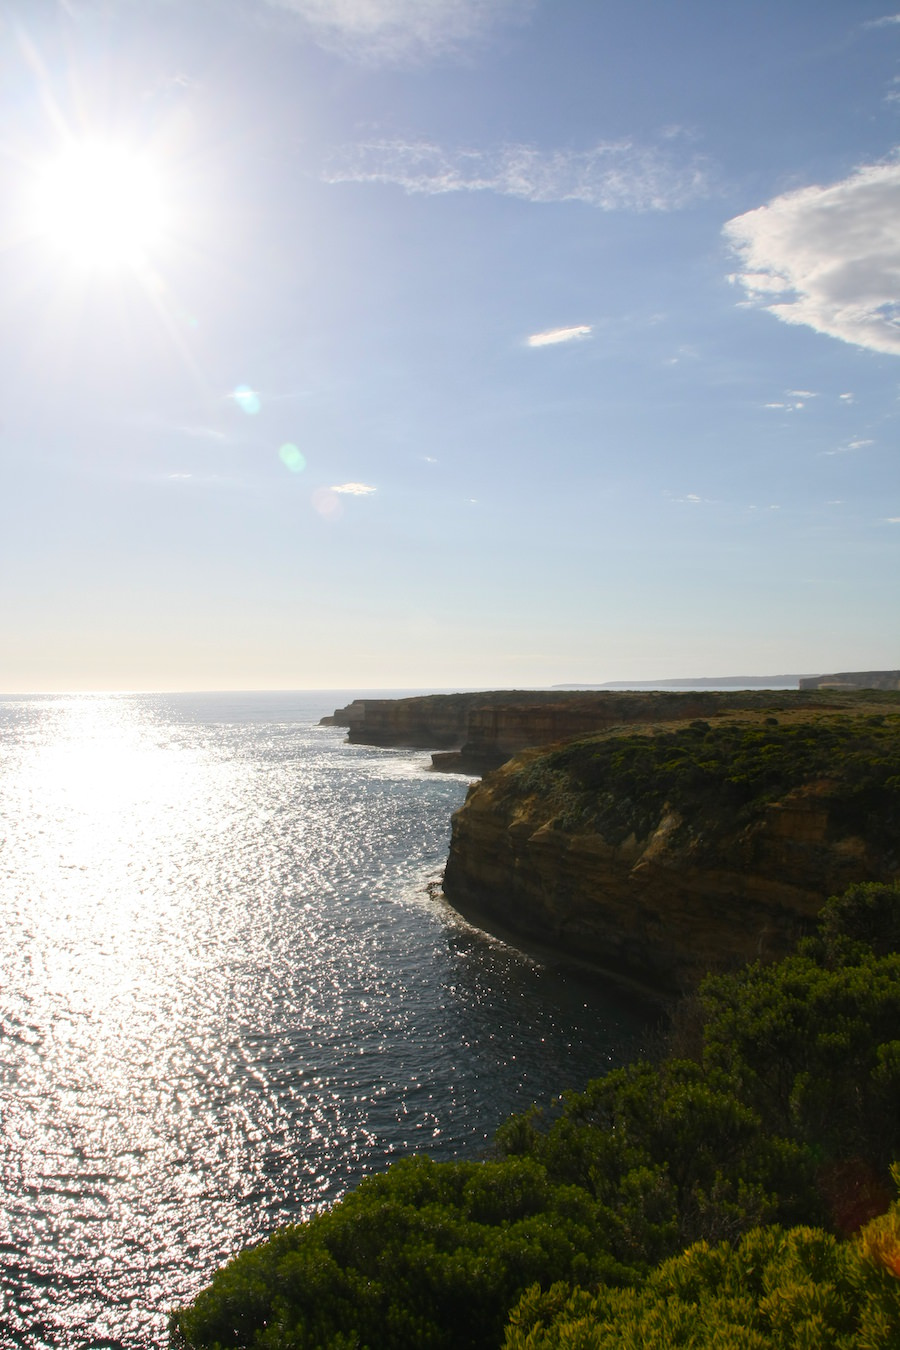 ITB Globetrotter - Great Ocean Road - South Australia